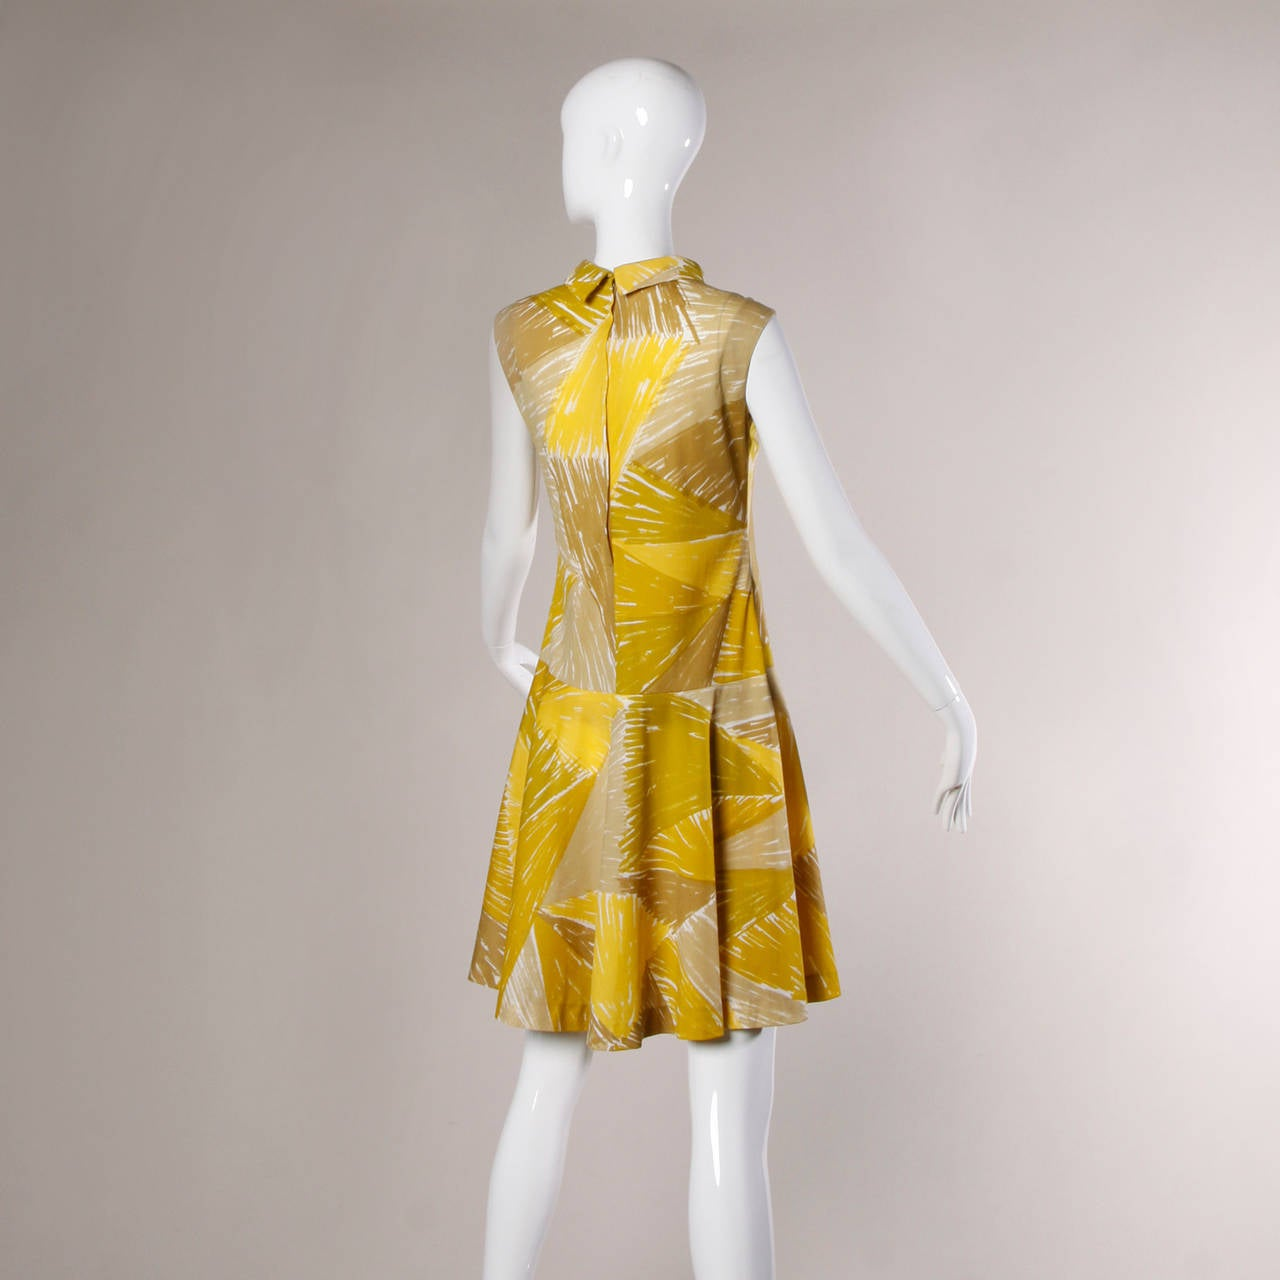 Vera Neumann Vintage 1960s Yellow Mod Painterly Print Mini Dress In Excellent Condition For Sale In Sparks, NV